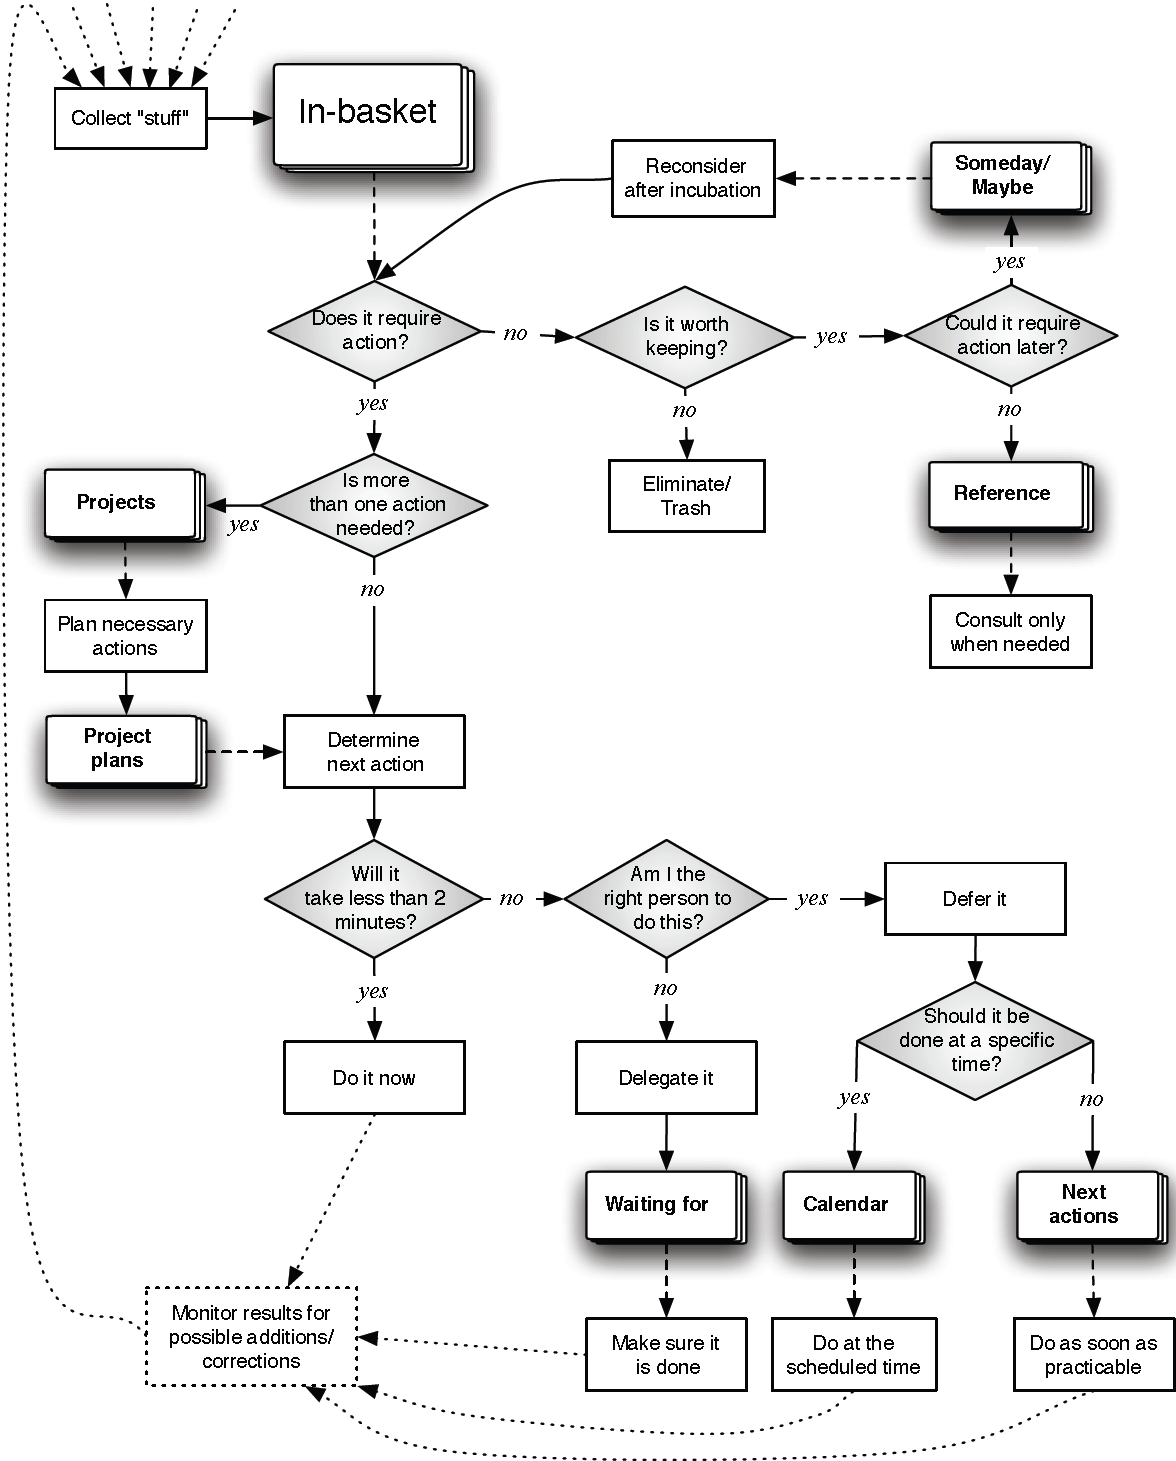 Figure 1: a flowchart depicting the GTD process for organizing and processing incoming stuff into action categories (elaborated from (Allen, 2001, p. 32)).